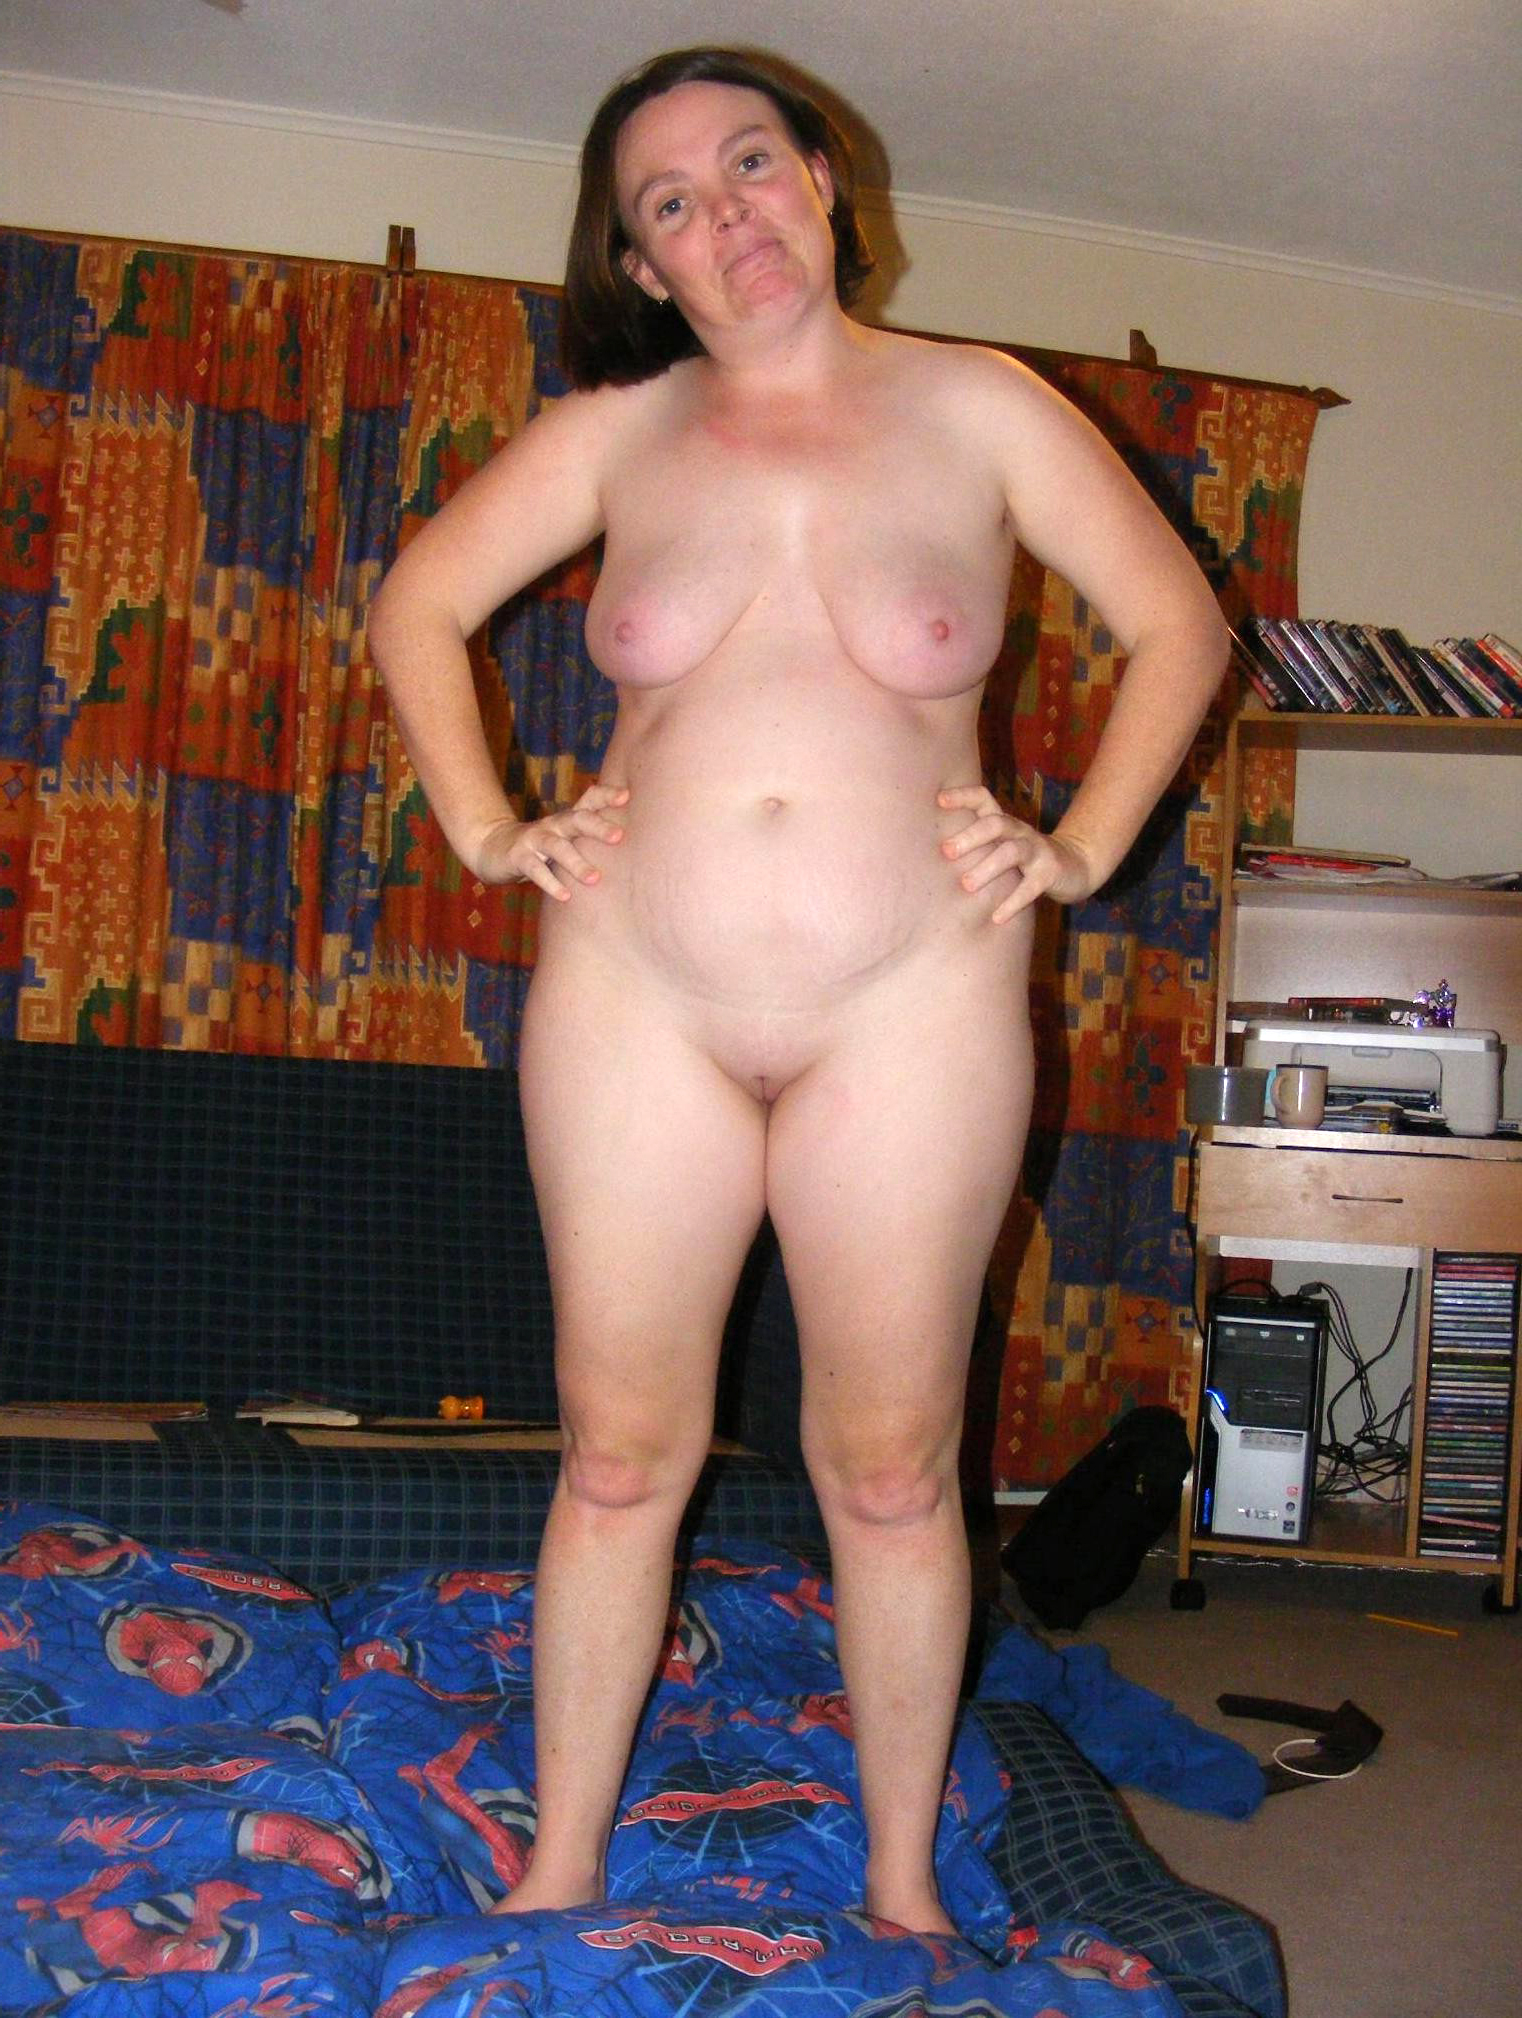 nude pictures of white women